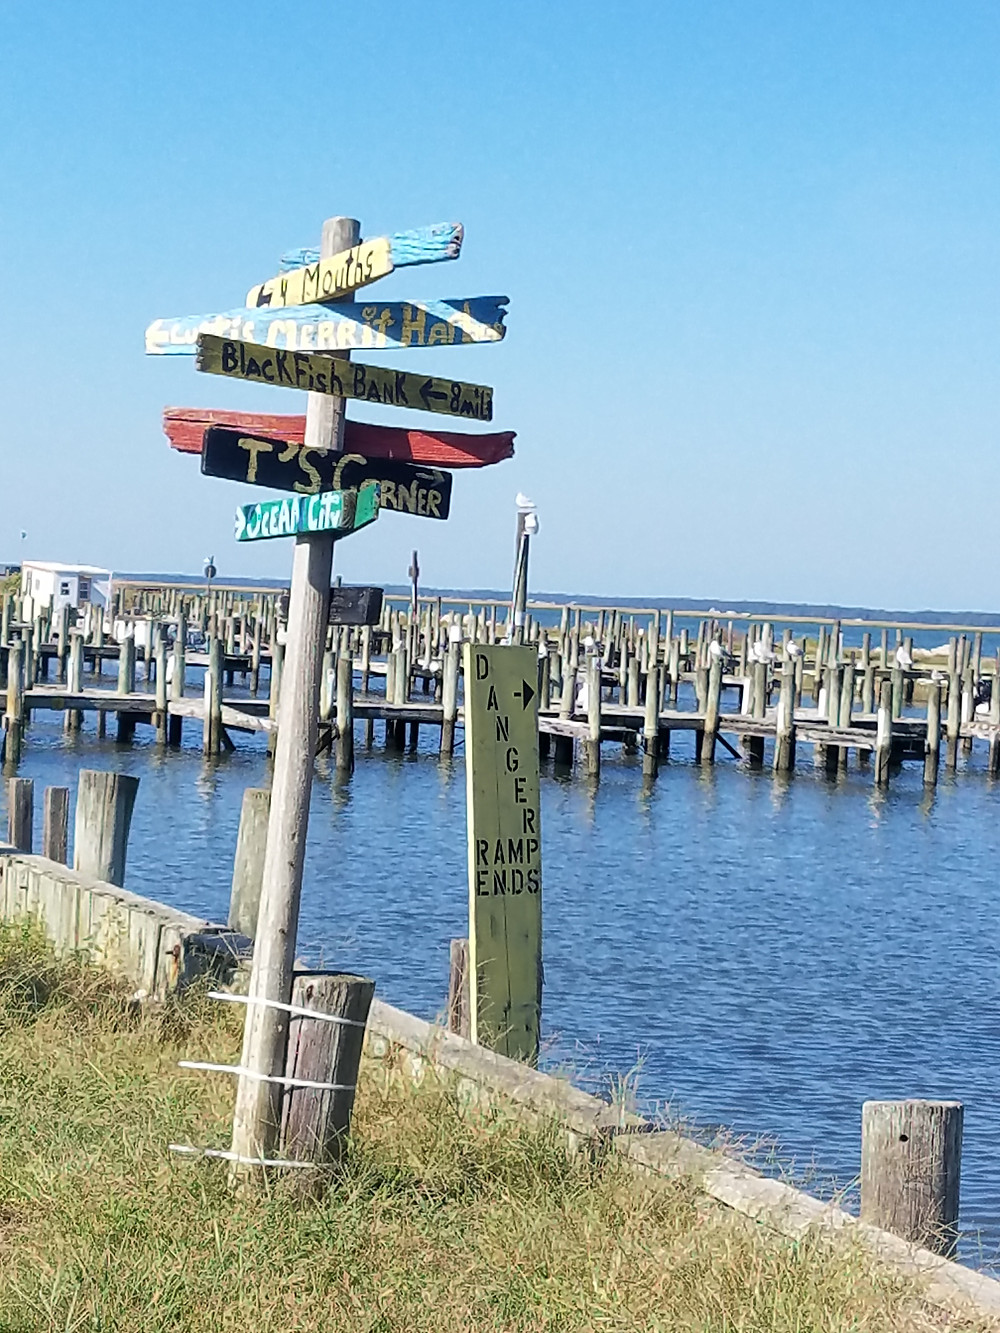 Colorful signs along the docks in Chincoteague